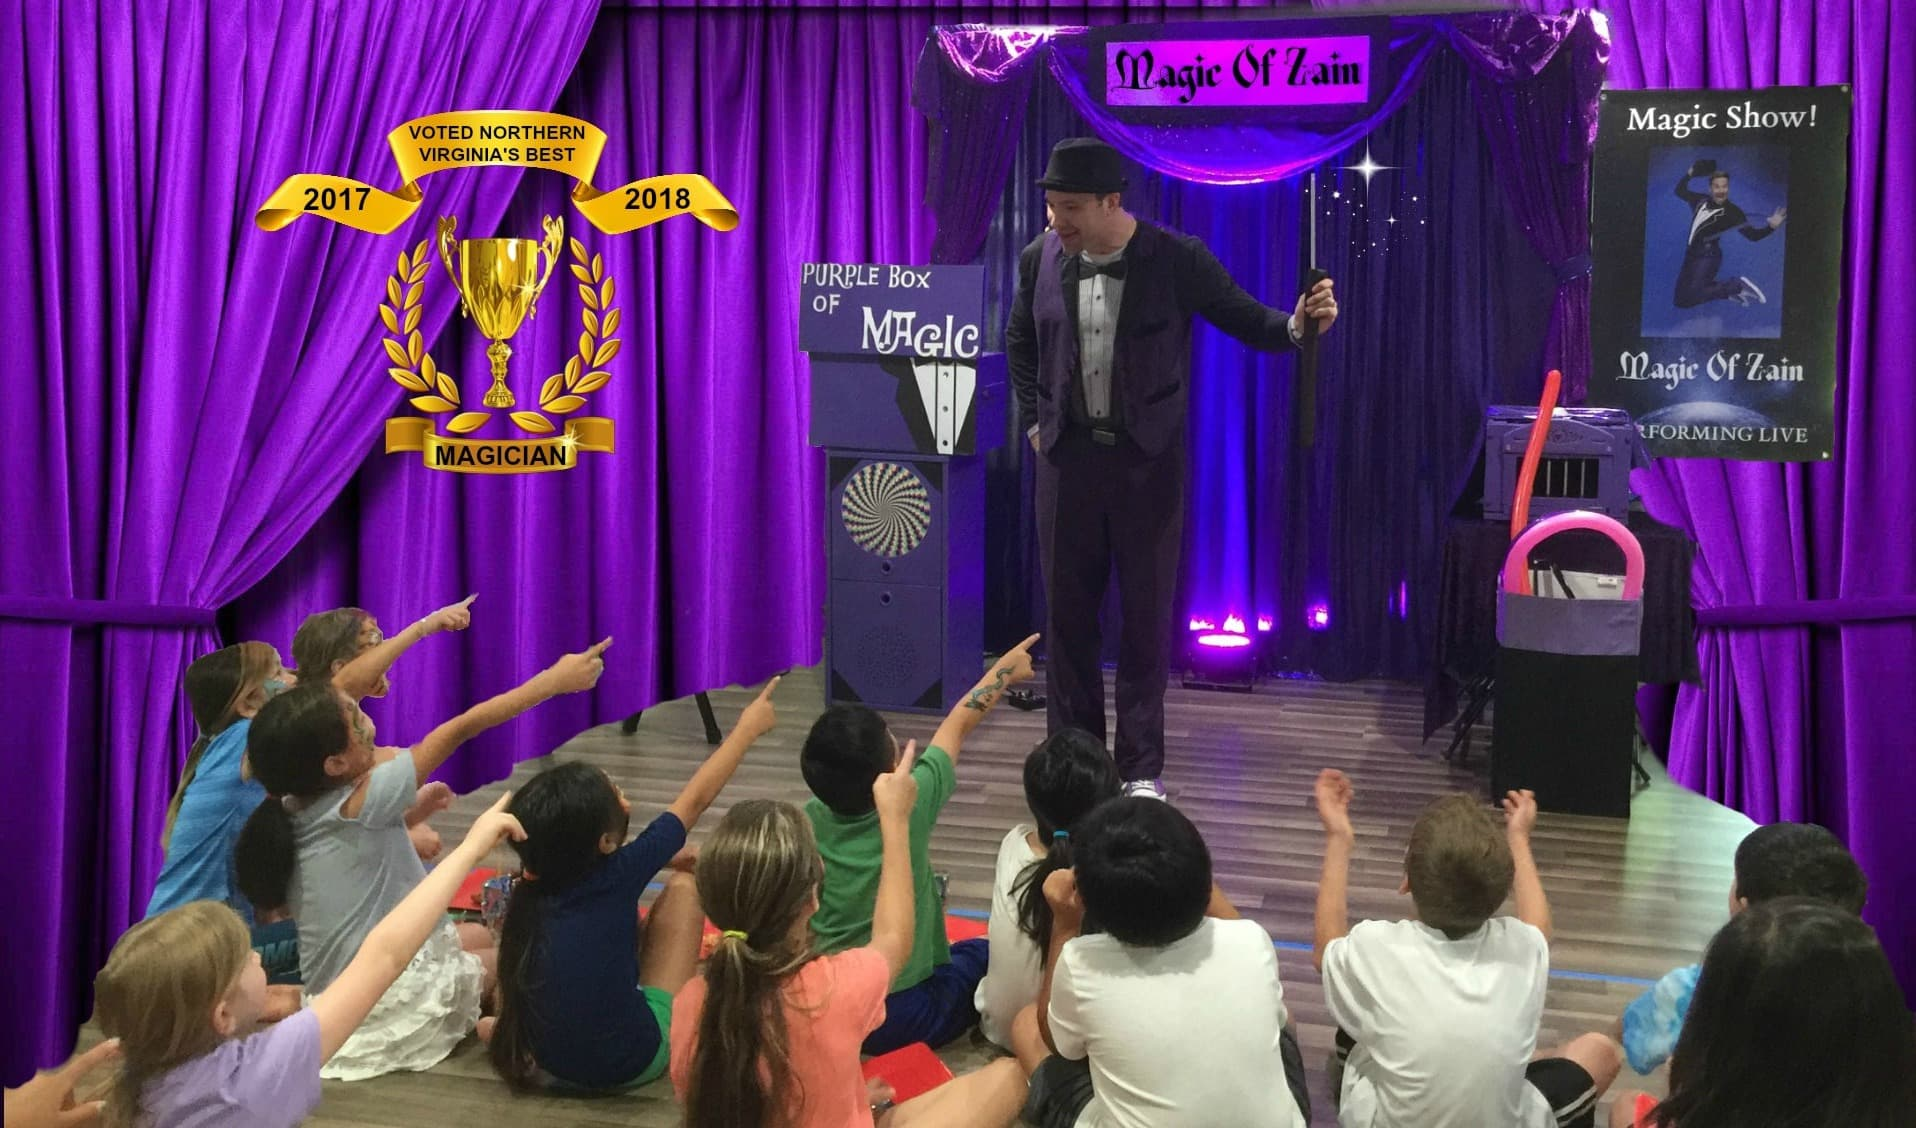 Magic Of Zain: Birthday Party Magician | Magic Show For Kids